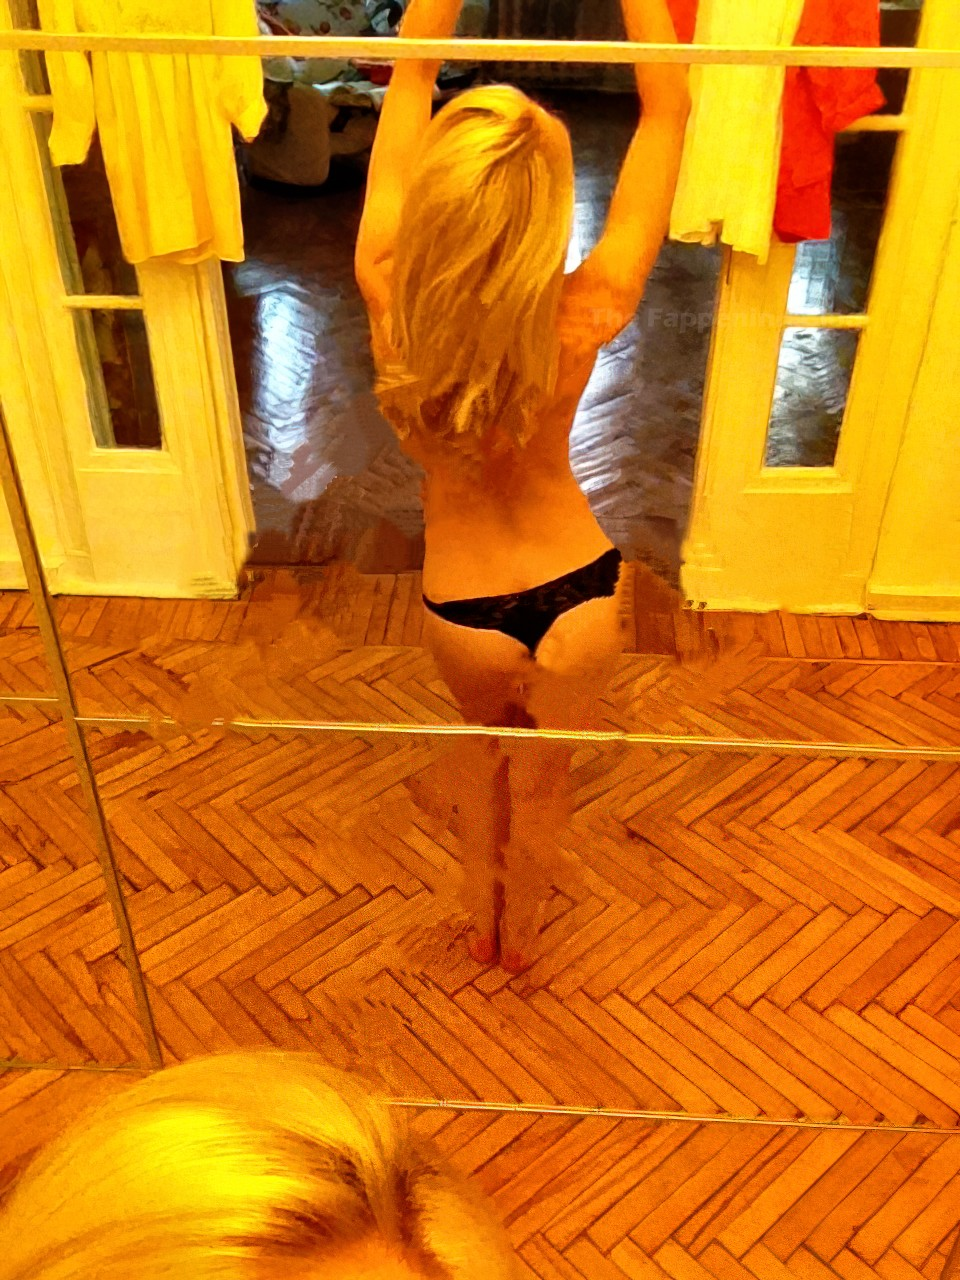 Polina Gagarina Nude Leaked The Fappening (3 Photos)